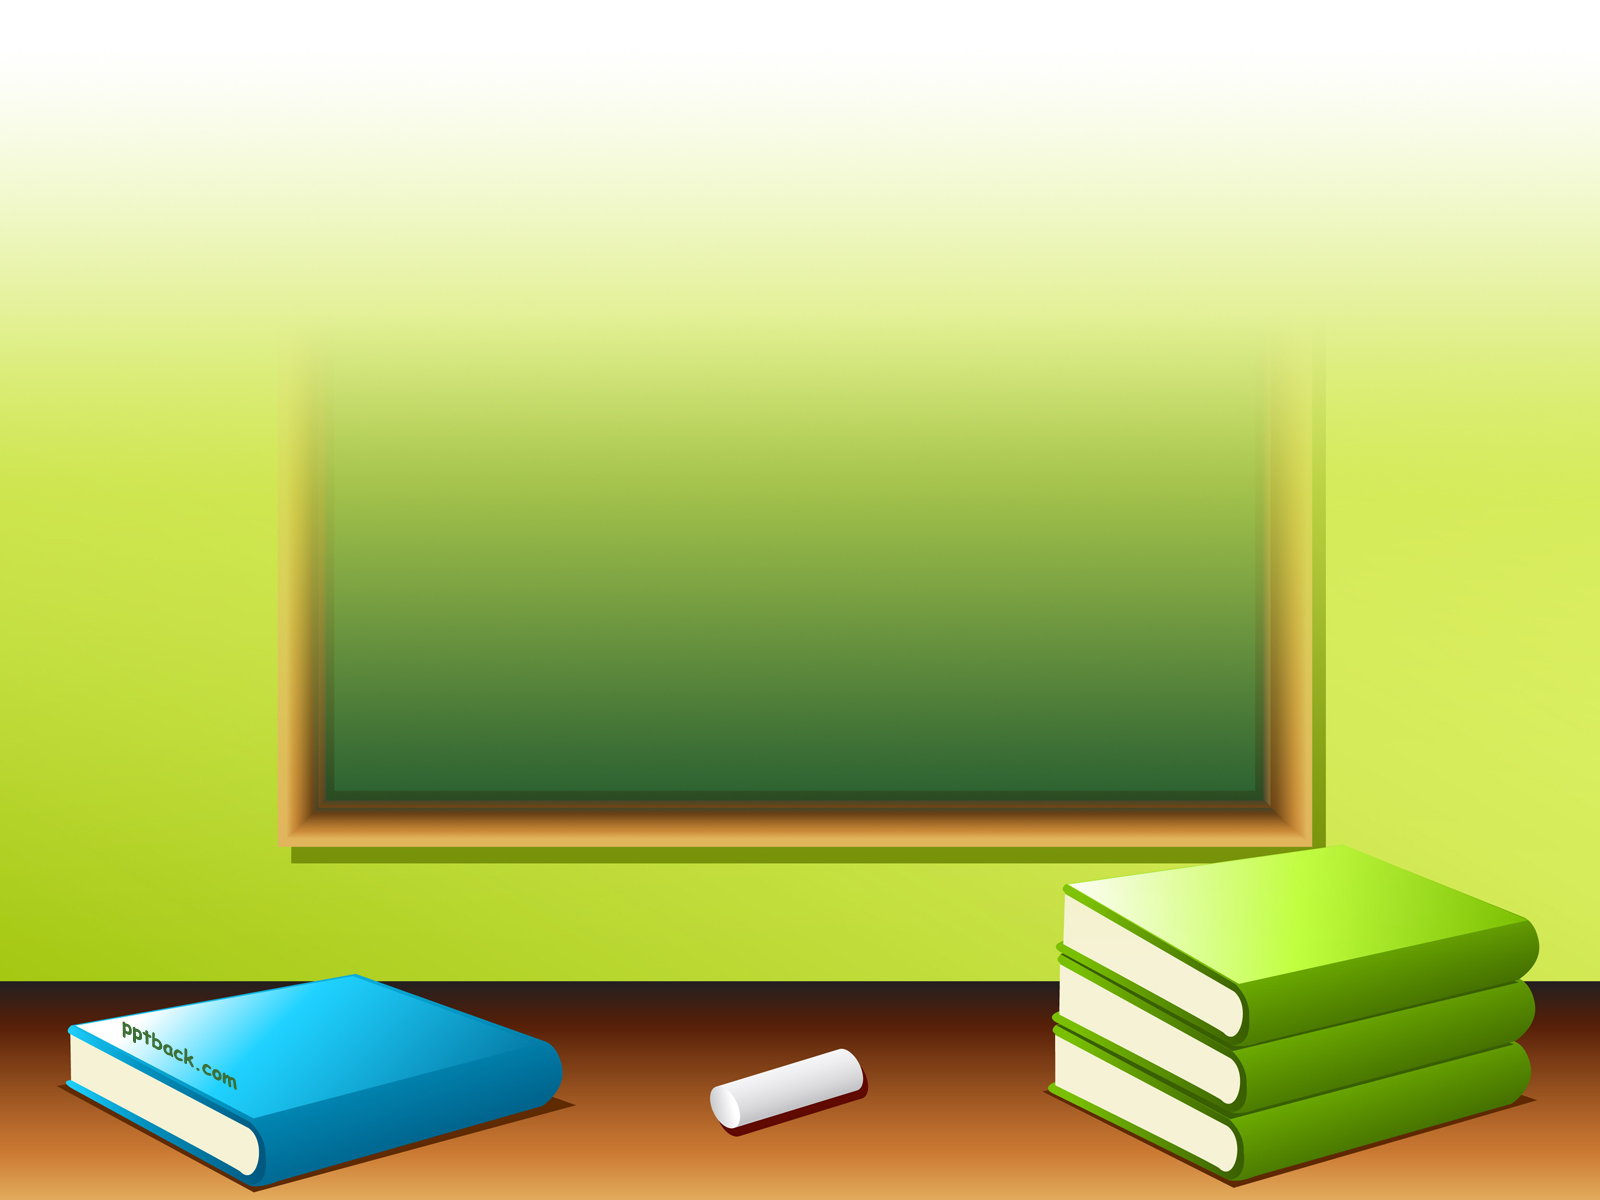 Back to school book pencil eraser PPT Backgrounds for your 1600x1200